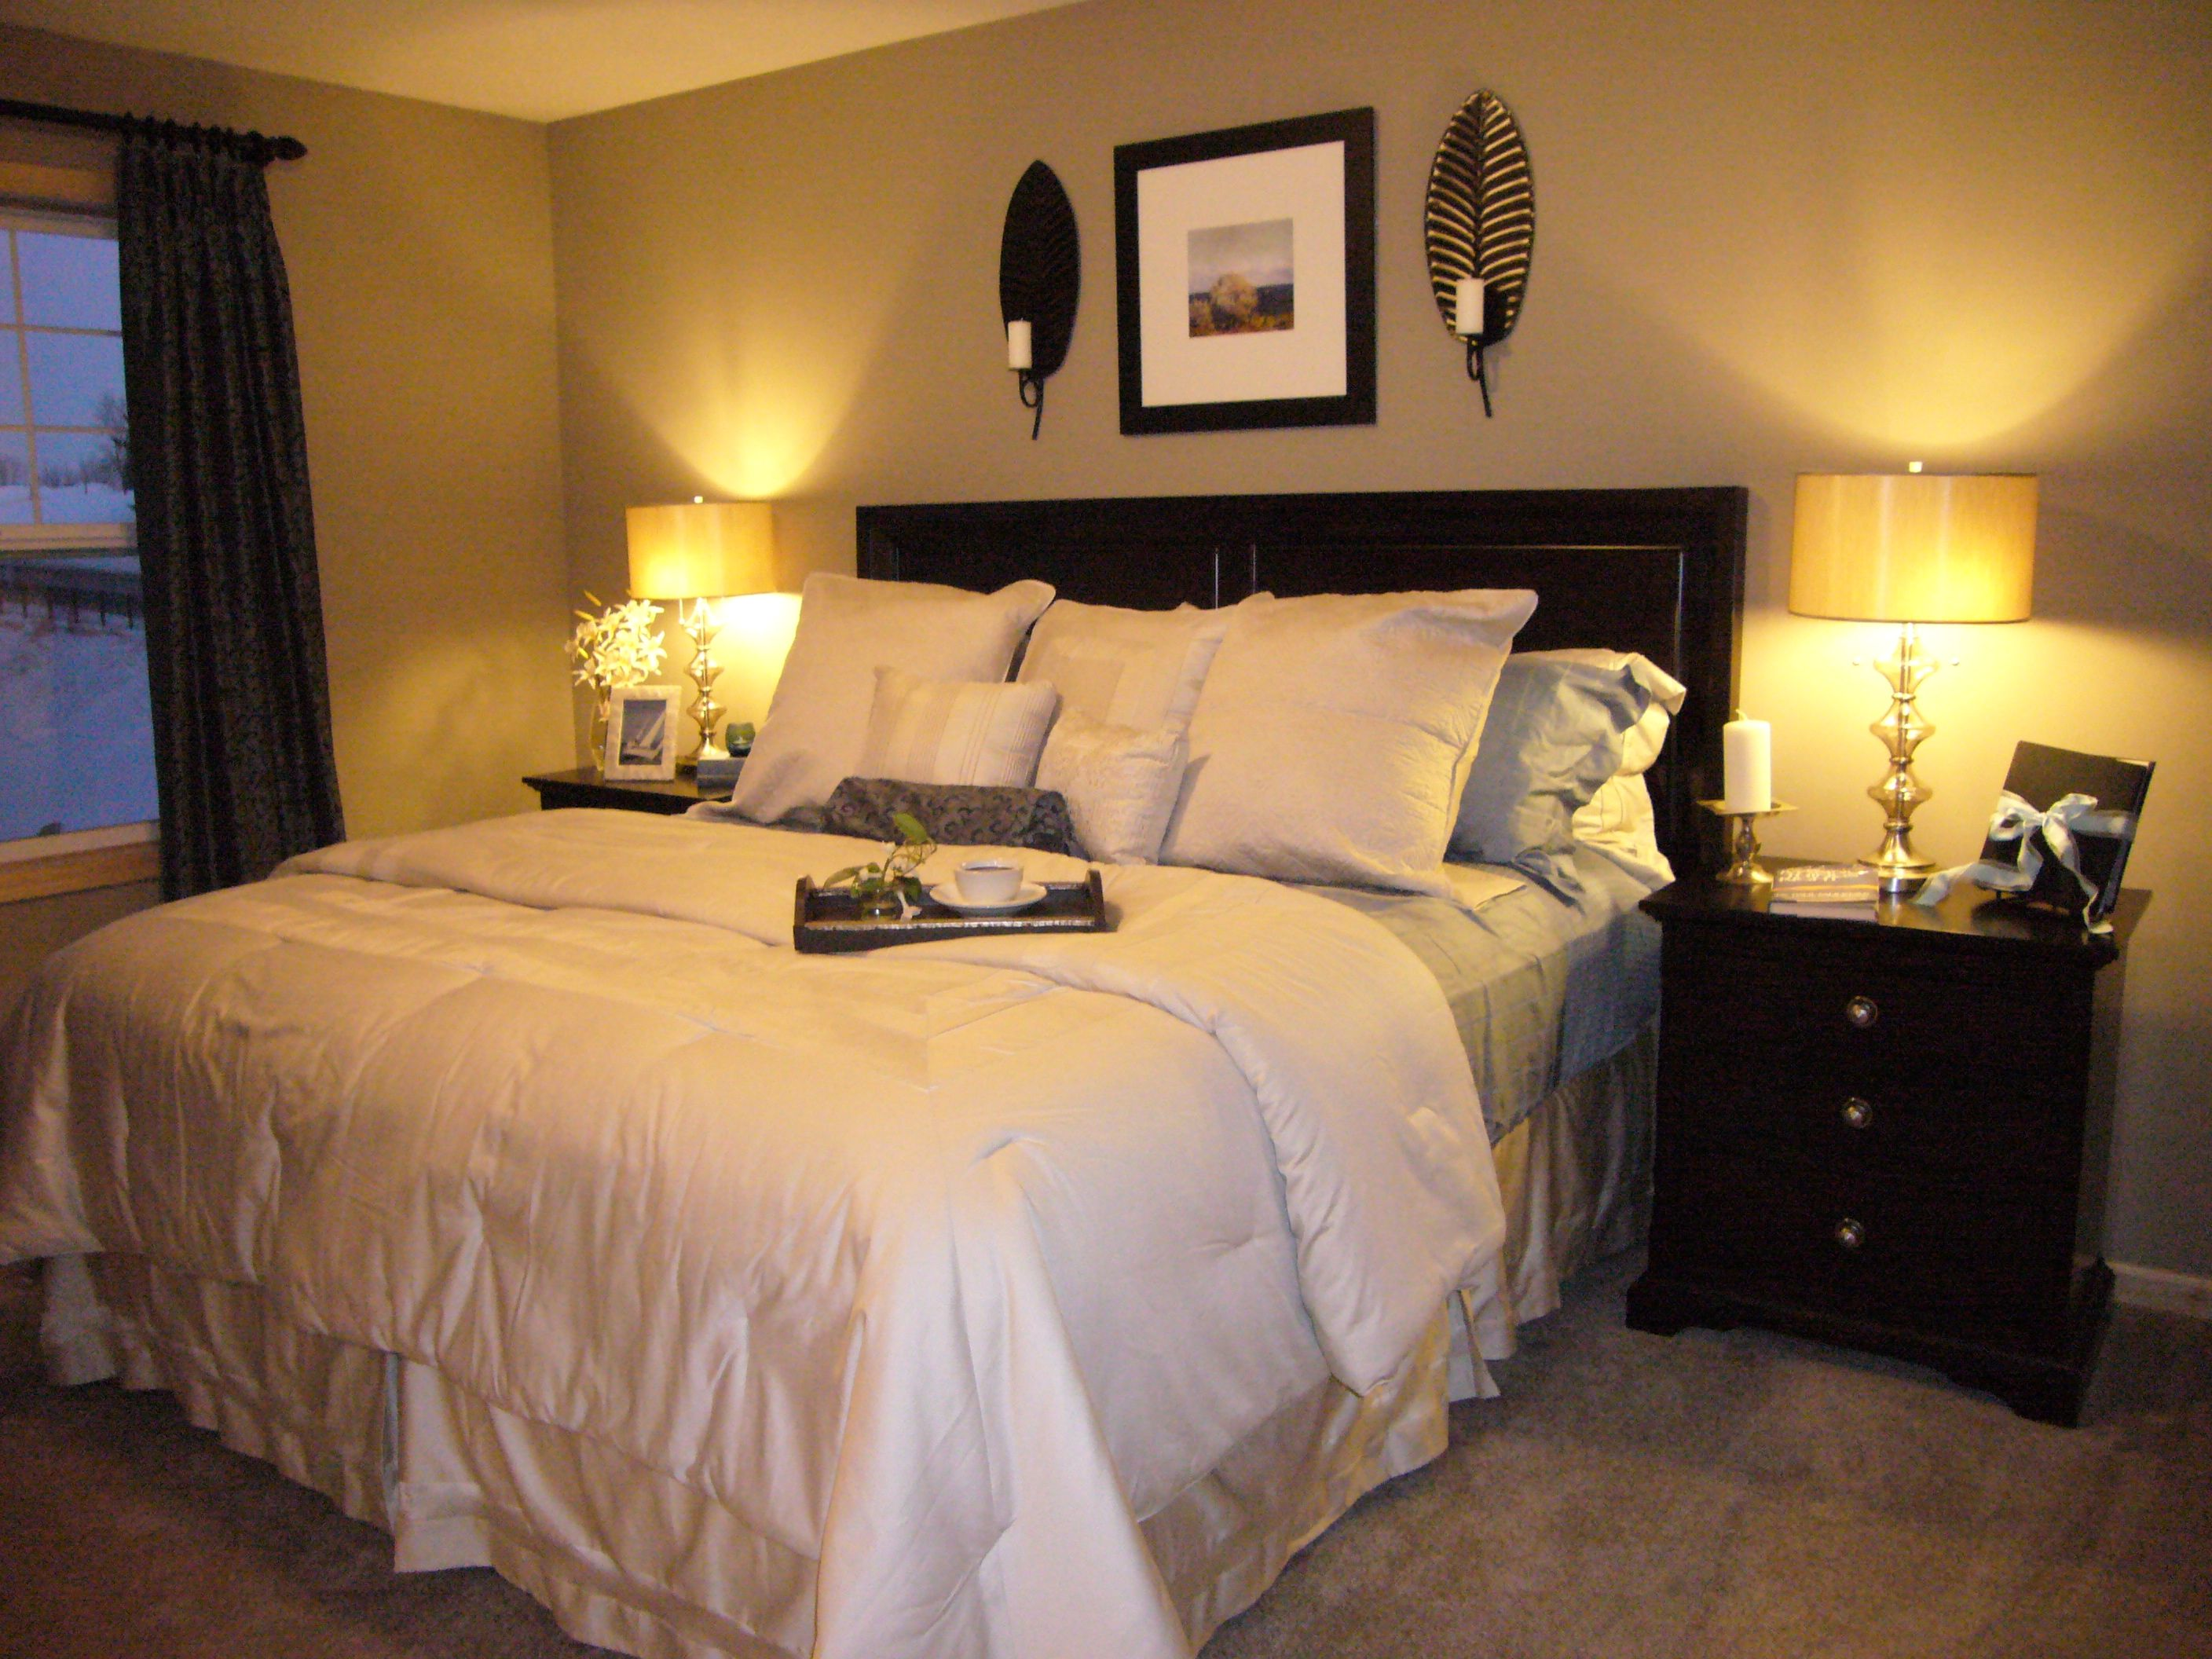 Another bedroom | Small master bedroom, Master bedrooms ...